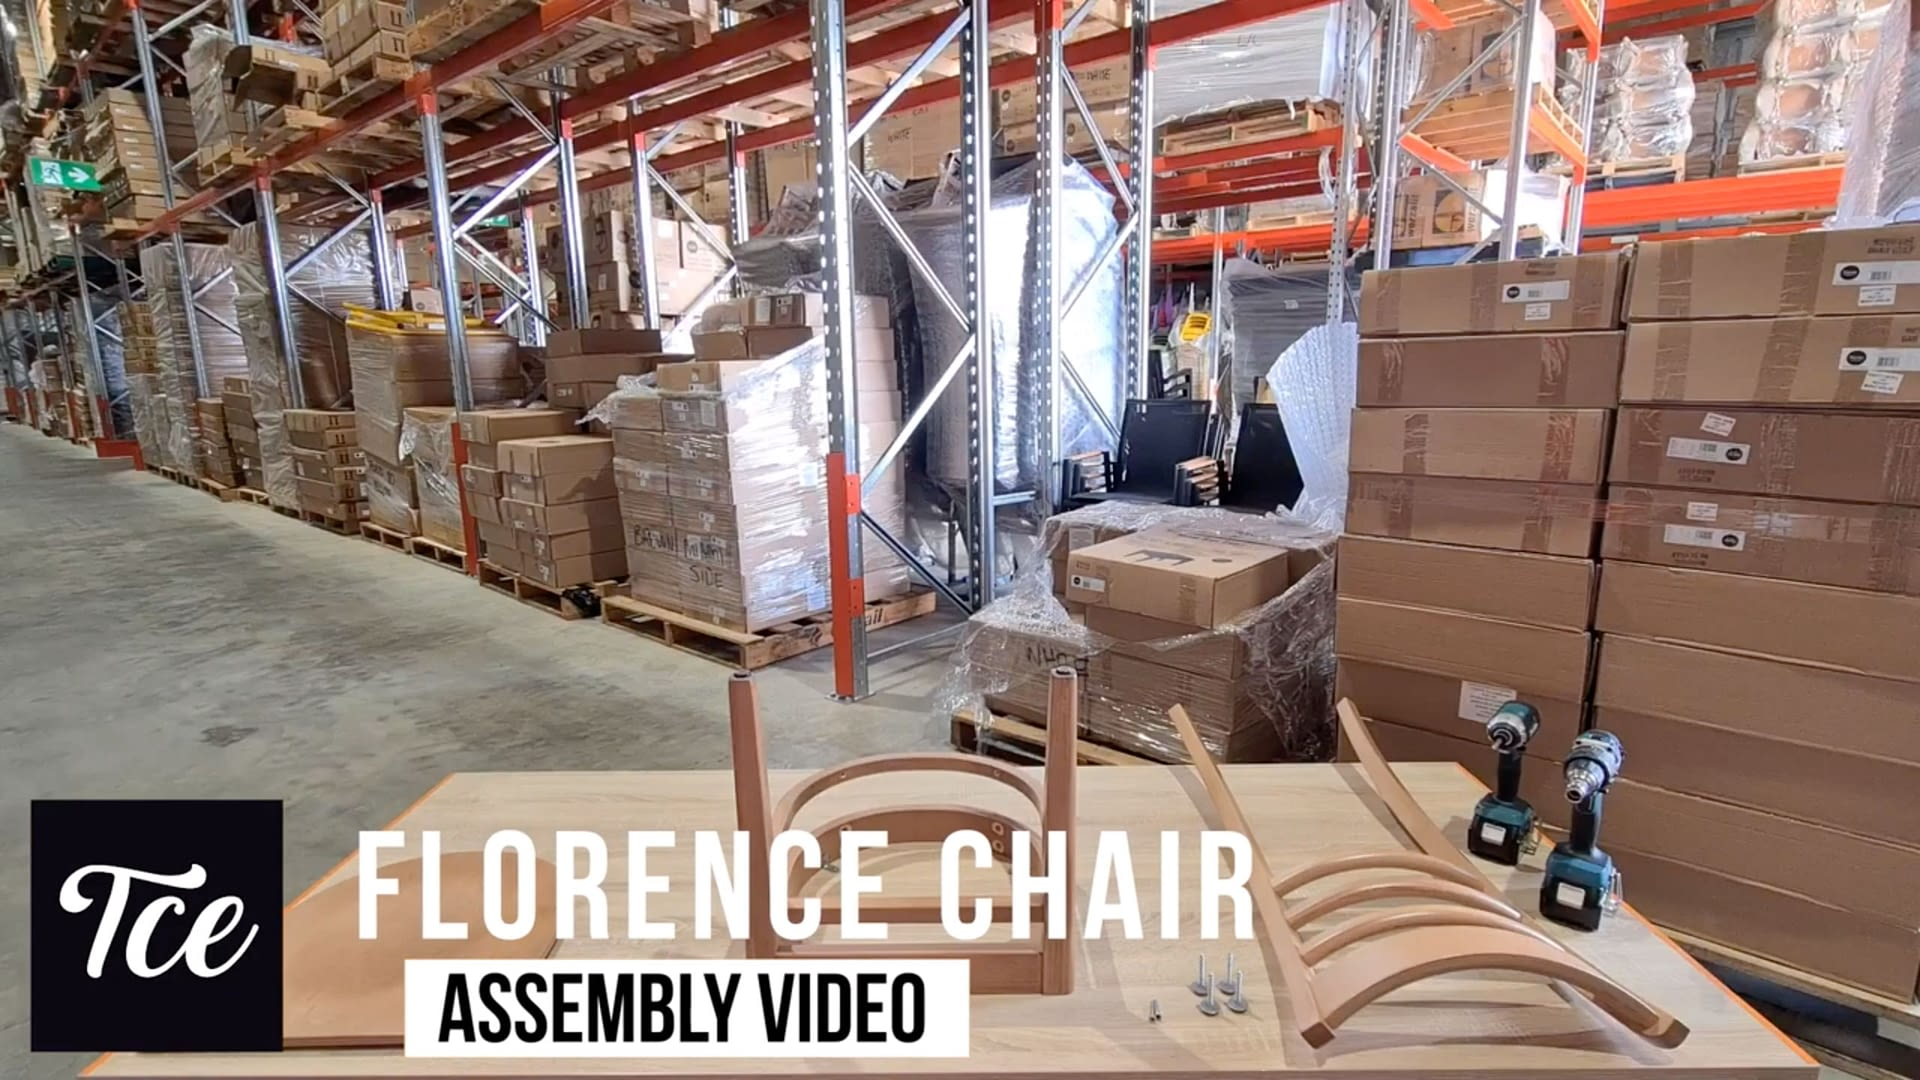 Assembly of the Florence Chair